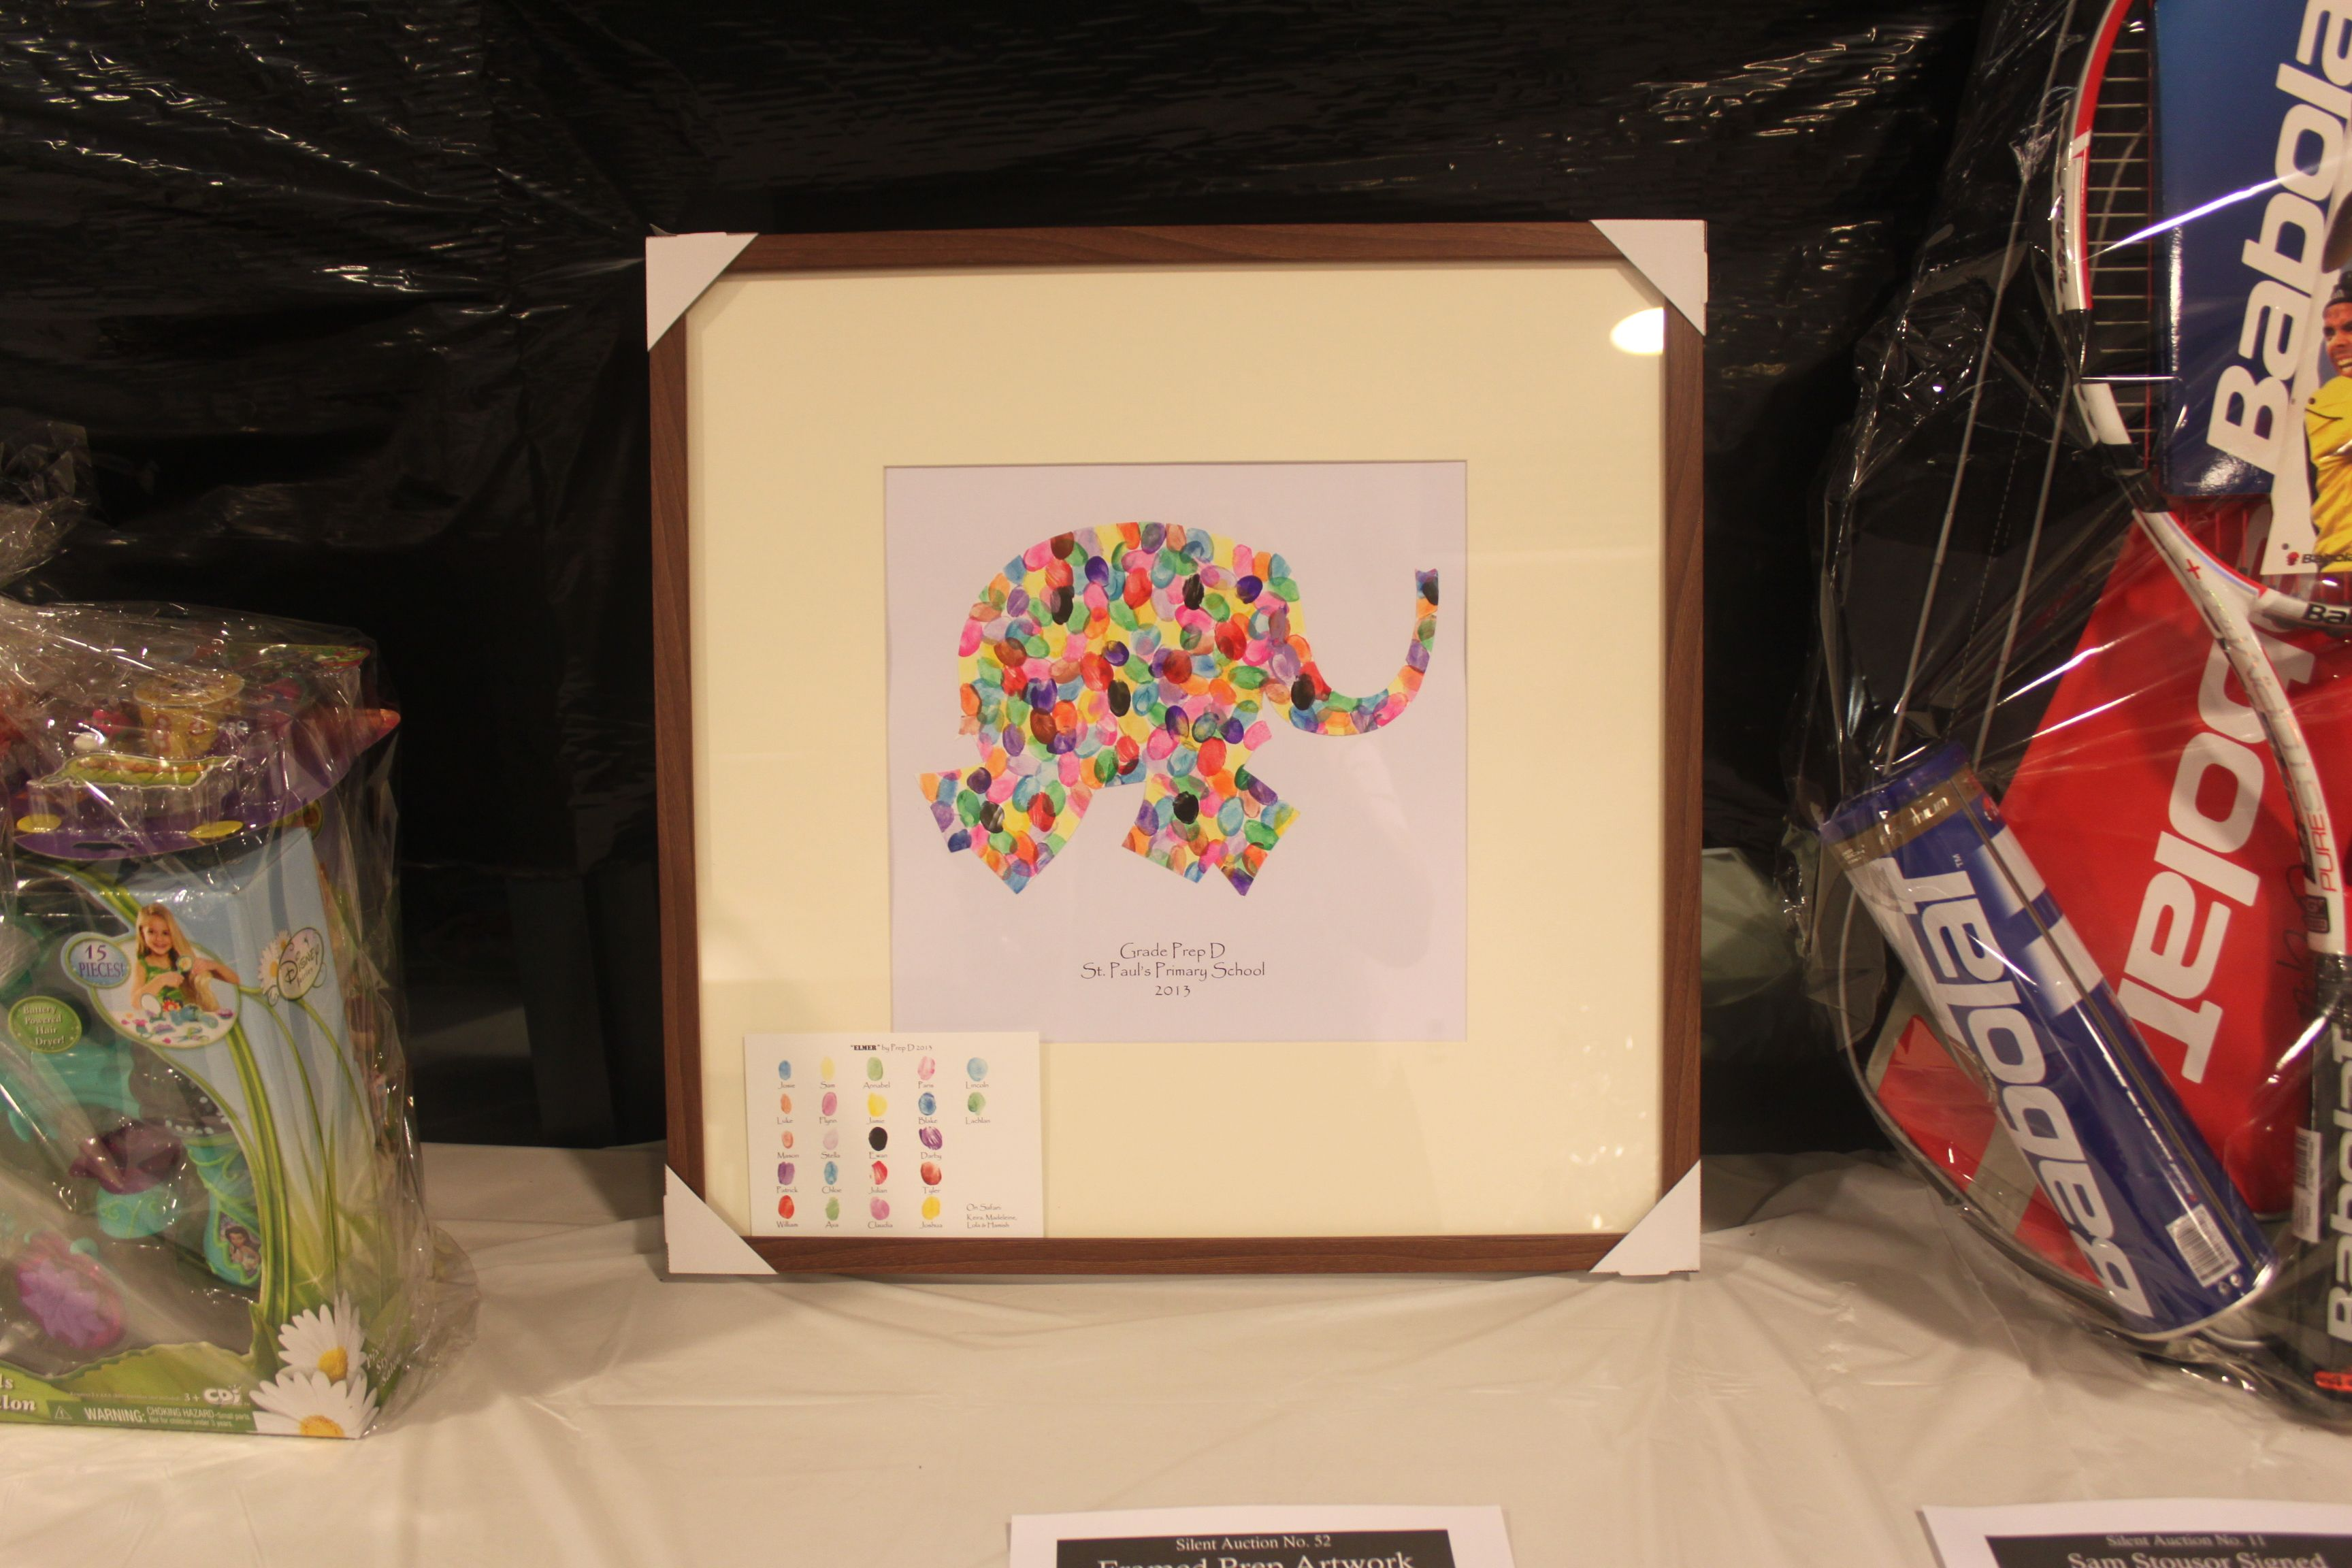 Artwork at the auction by Donna Campbell